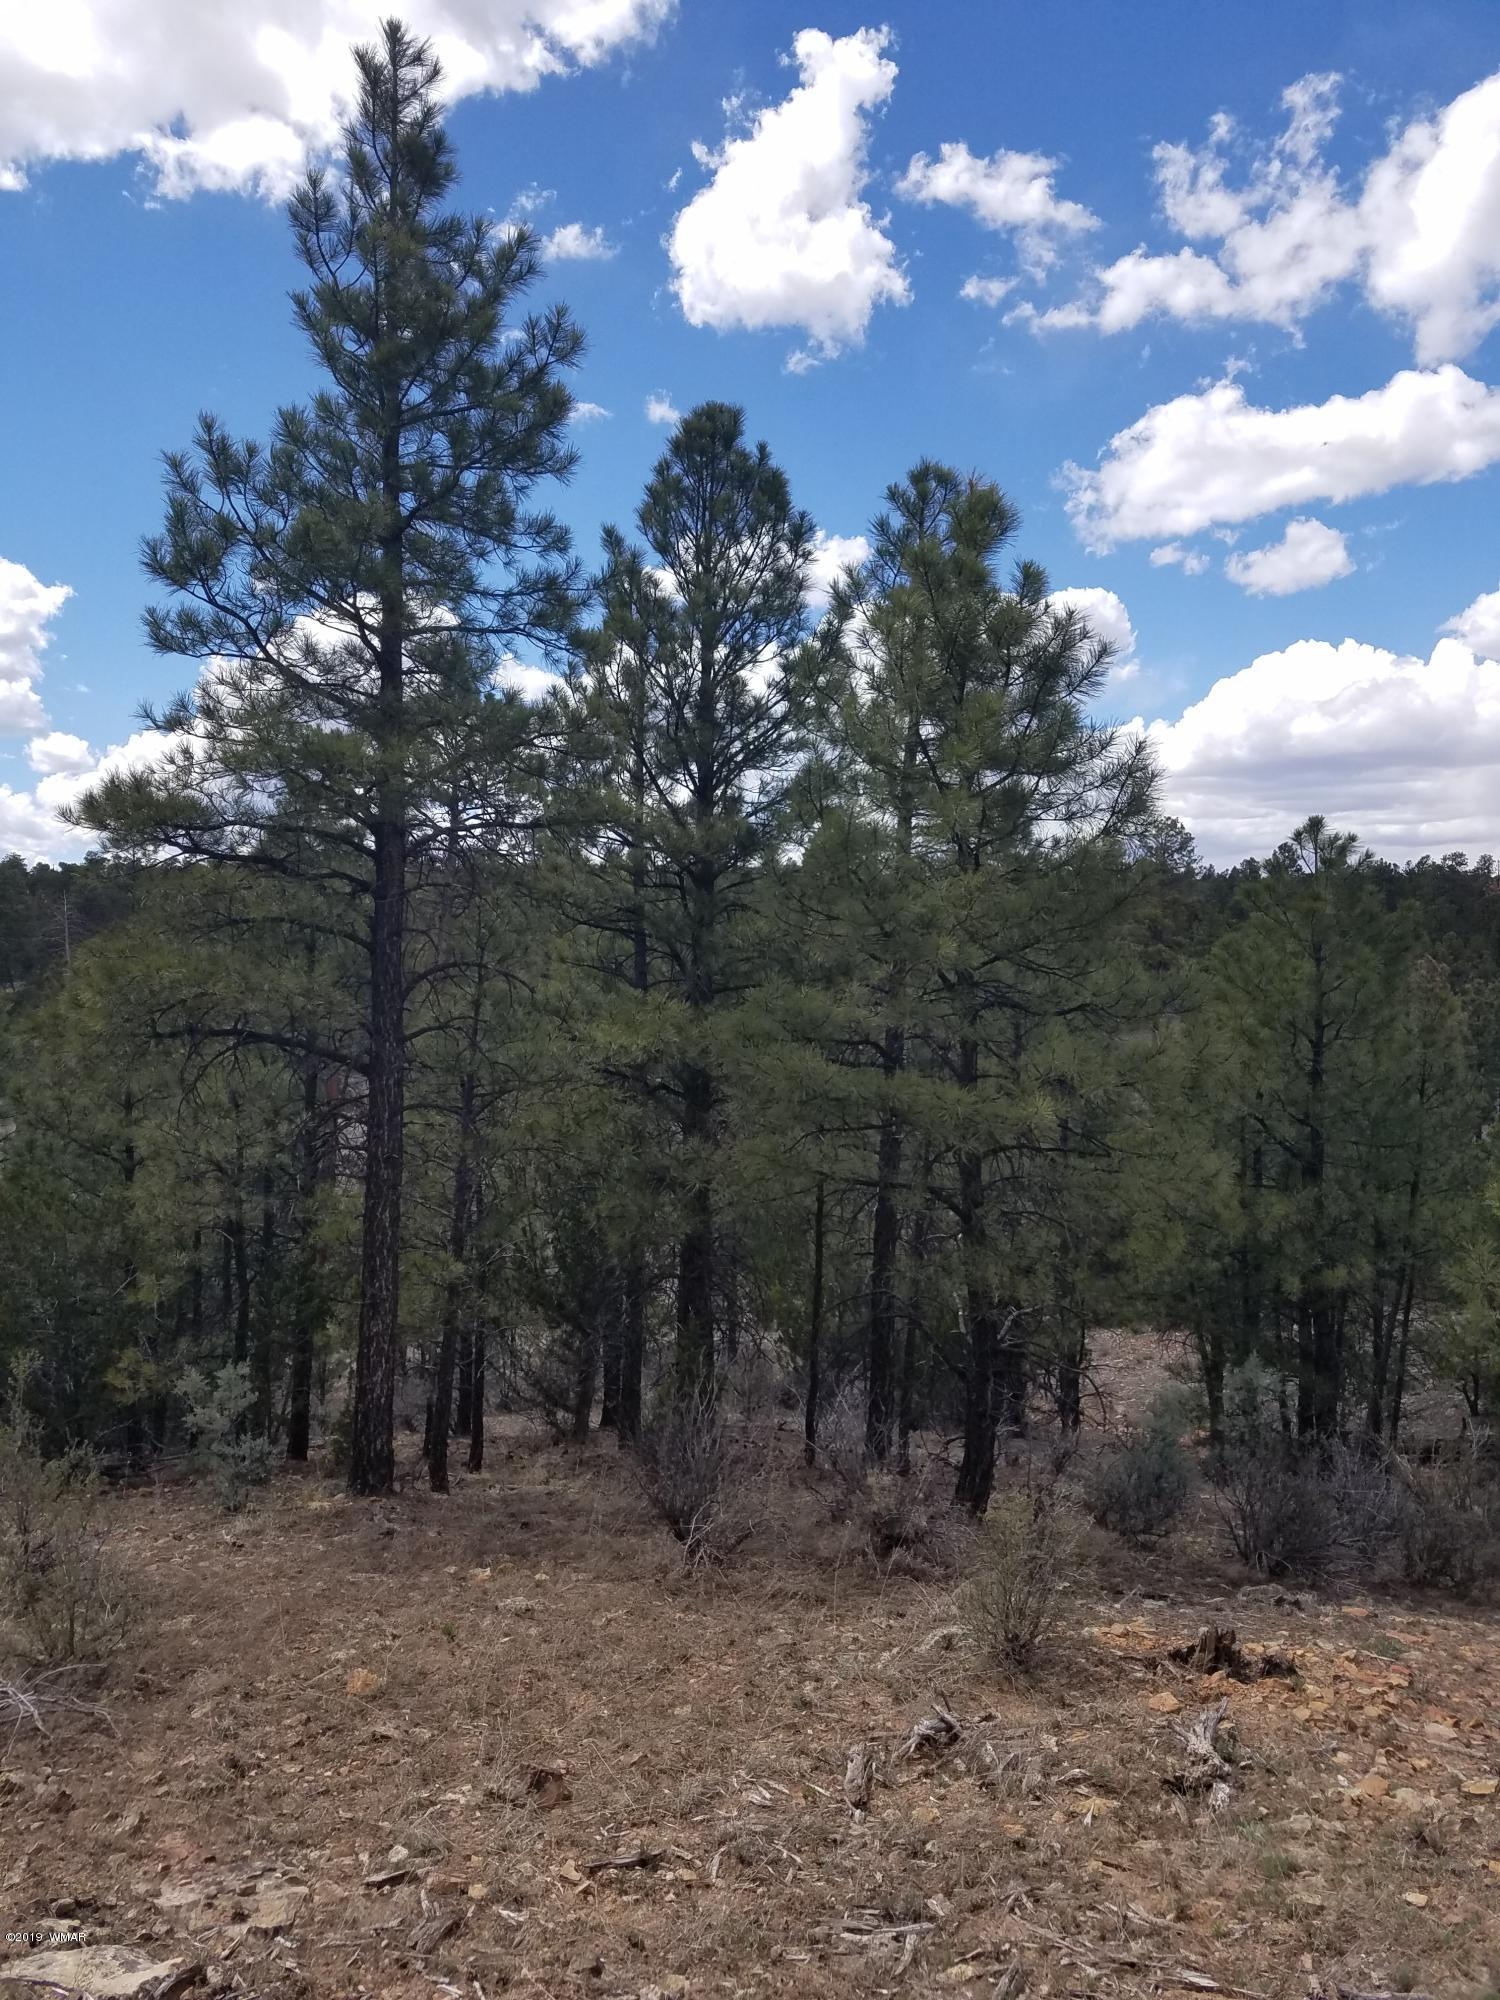 Bordering National Forest with power and water!!  Rare find with lots of big trees and easy access only one mile off Hwy 260 in Heber. Several wonderful building sites/can be divided.  Ride the horses or quads for miles or just enjoy the privacy.  Buyer to verify the water with Heber Water and electric with Navapache.  Call listing agent for more information.  Private road maintenance agreement of around $200.00 per year for Hill Rd.